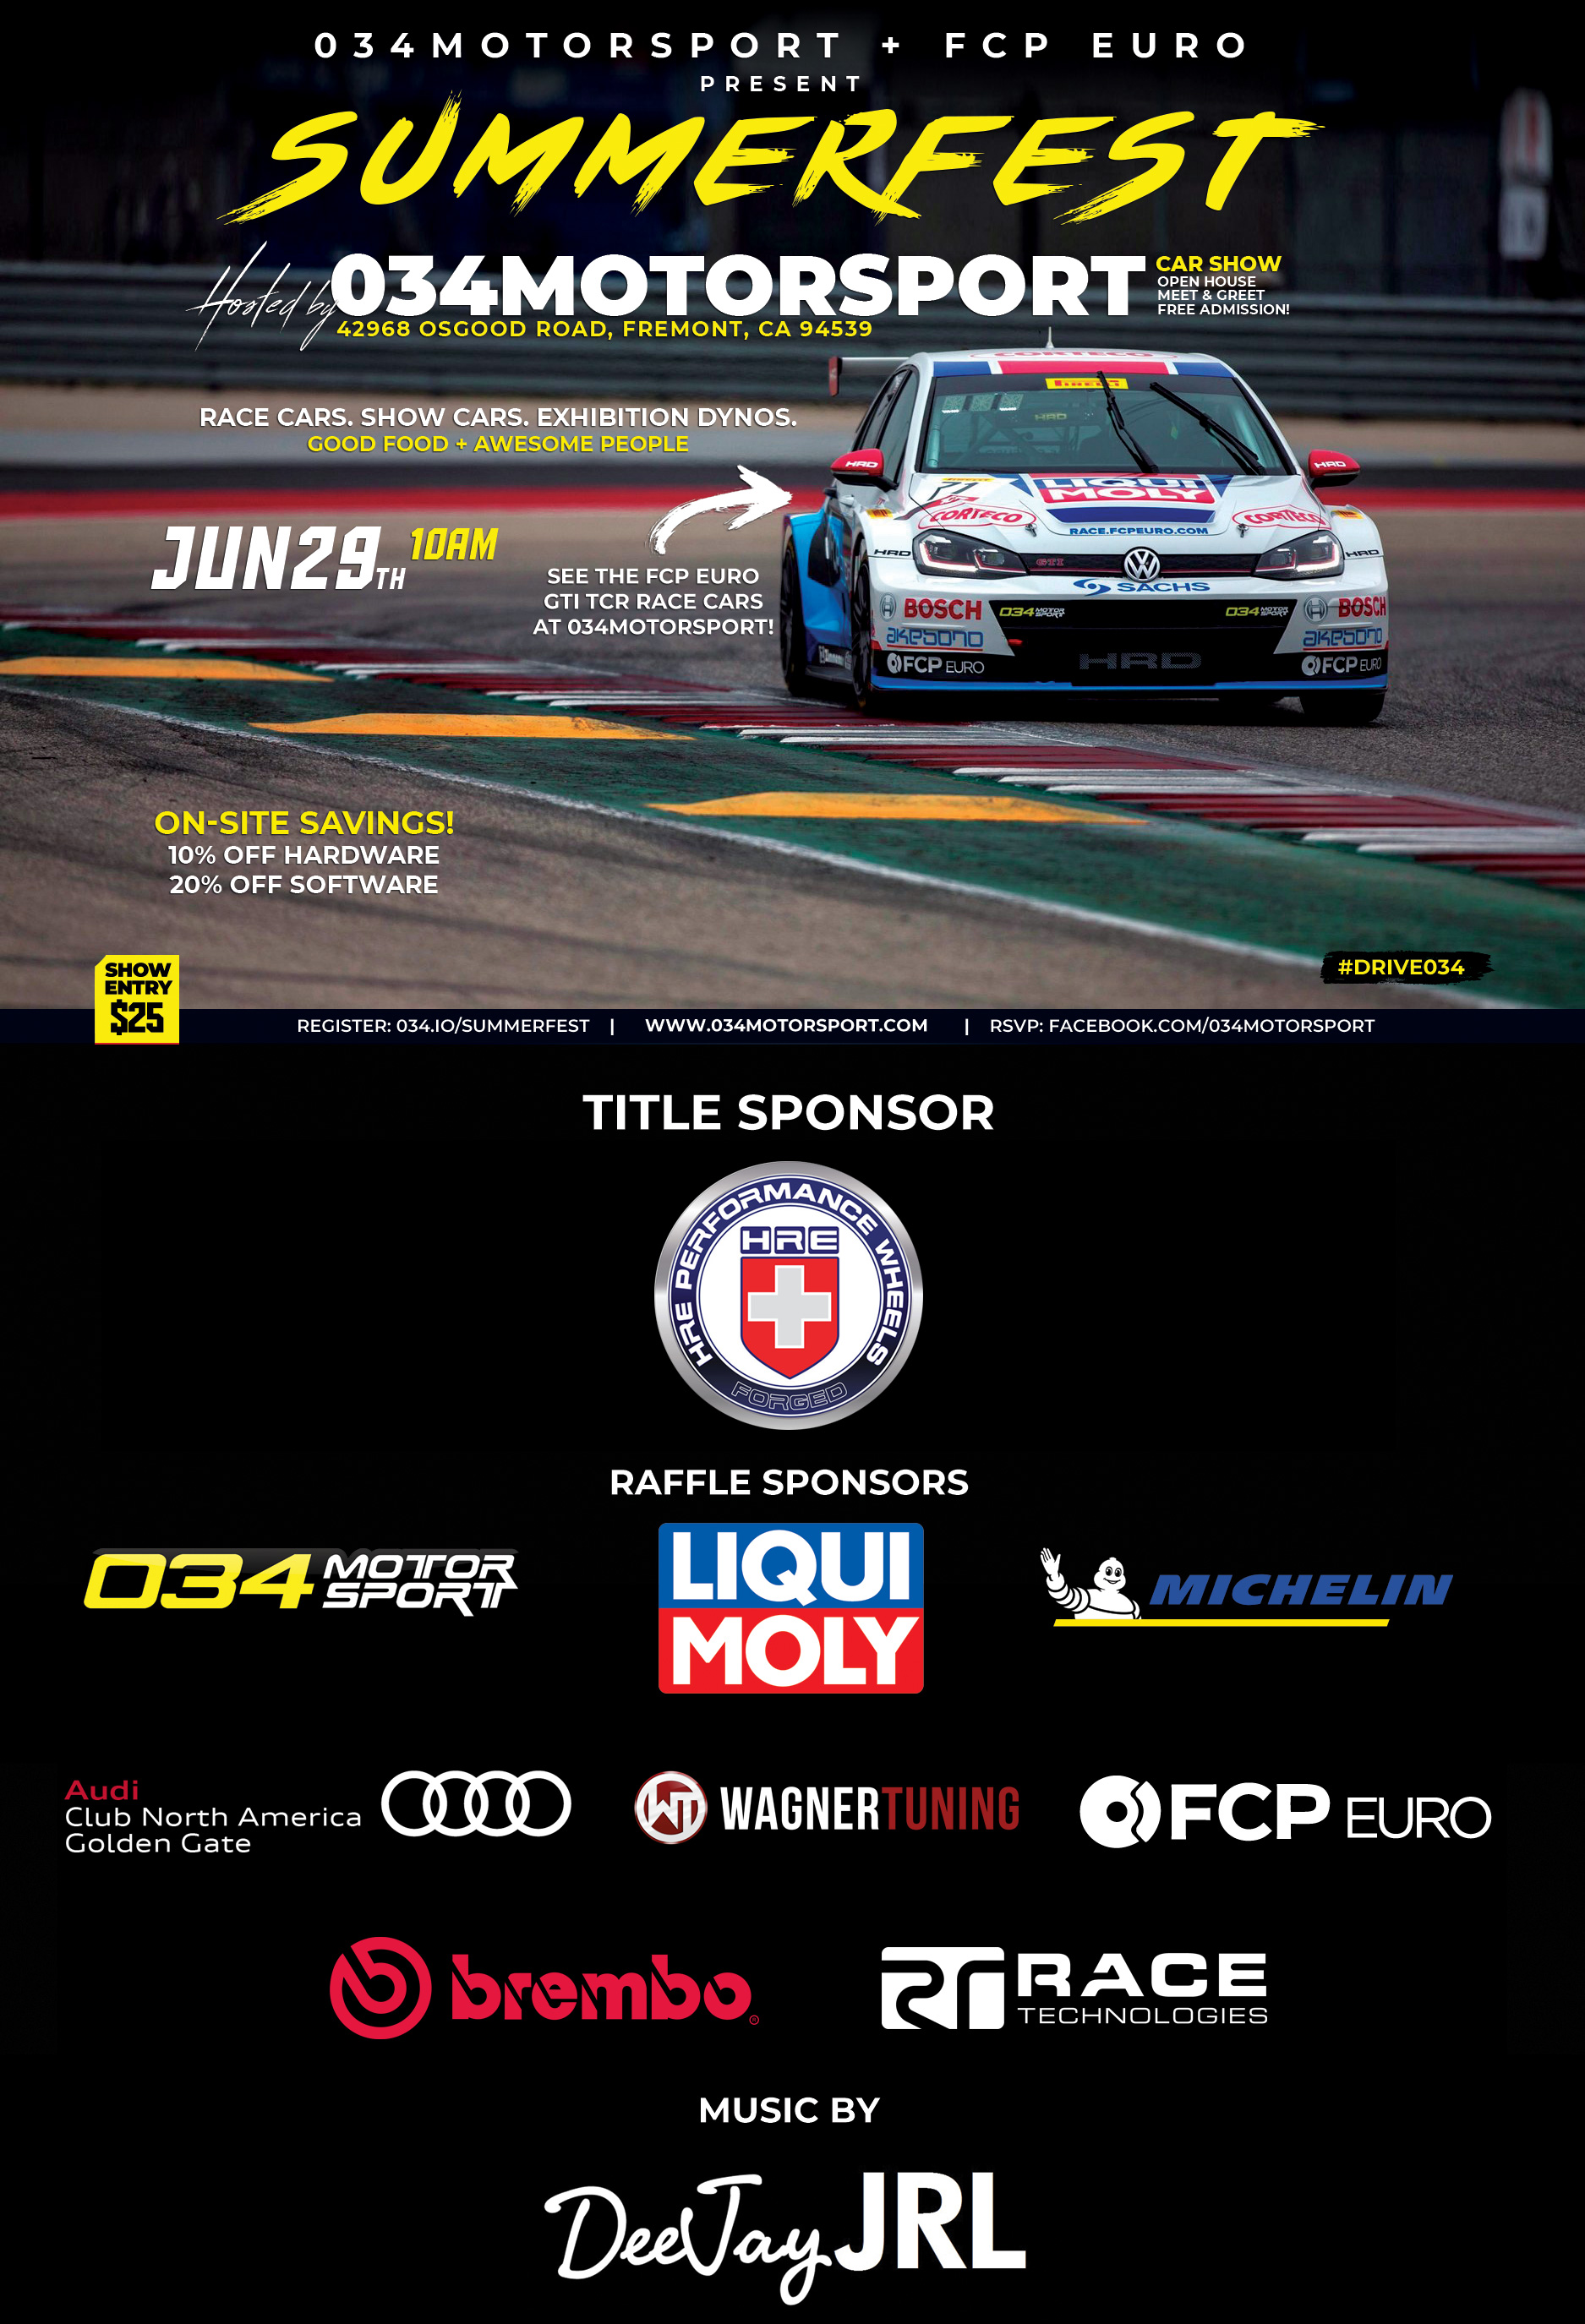 SummerFest 2019 - Audi/Volkswagen Car Show, Open House, and Get Together at 034Motorsport in Fremont, CA